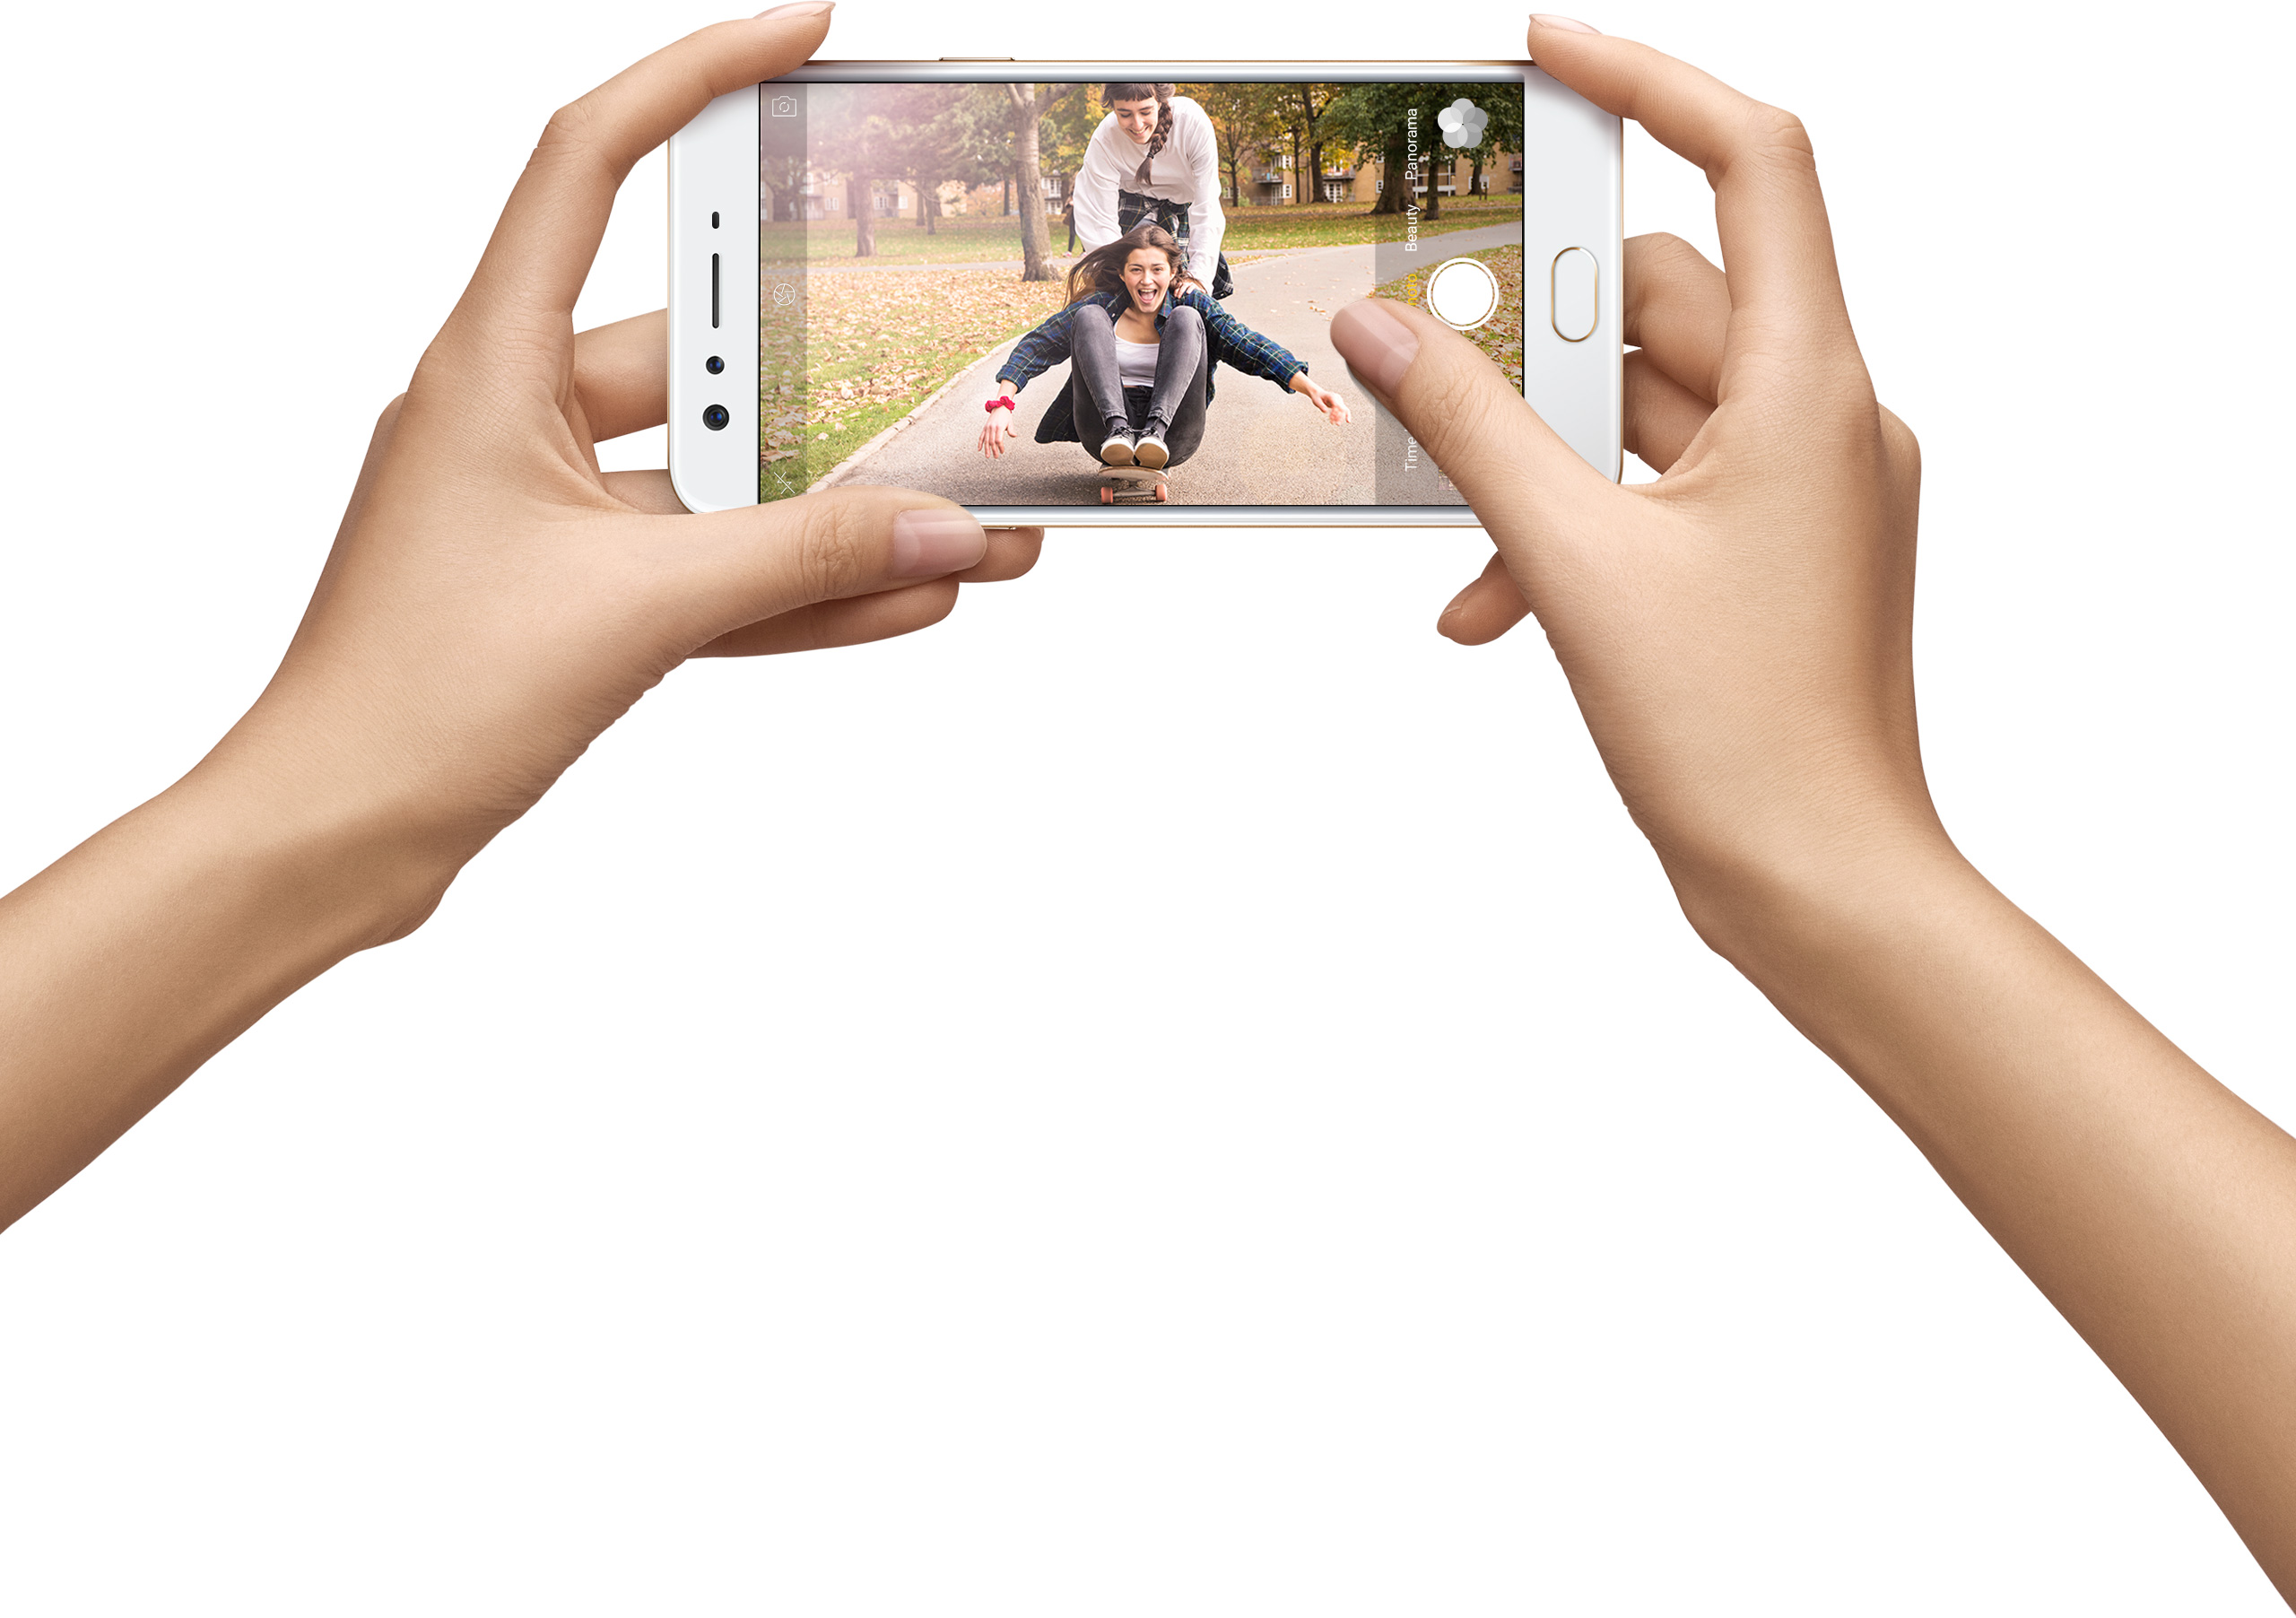 Learn more about the F3 Plus camera